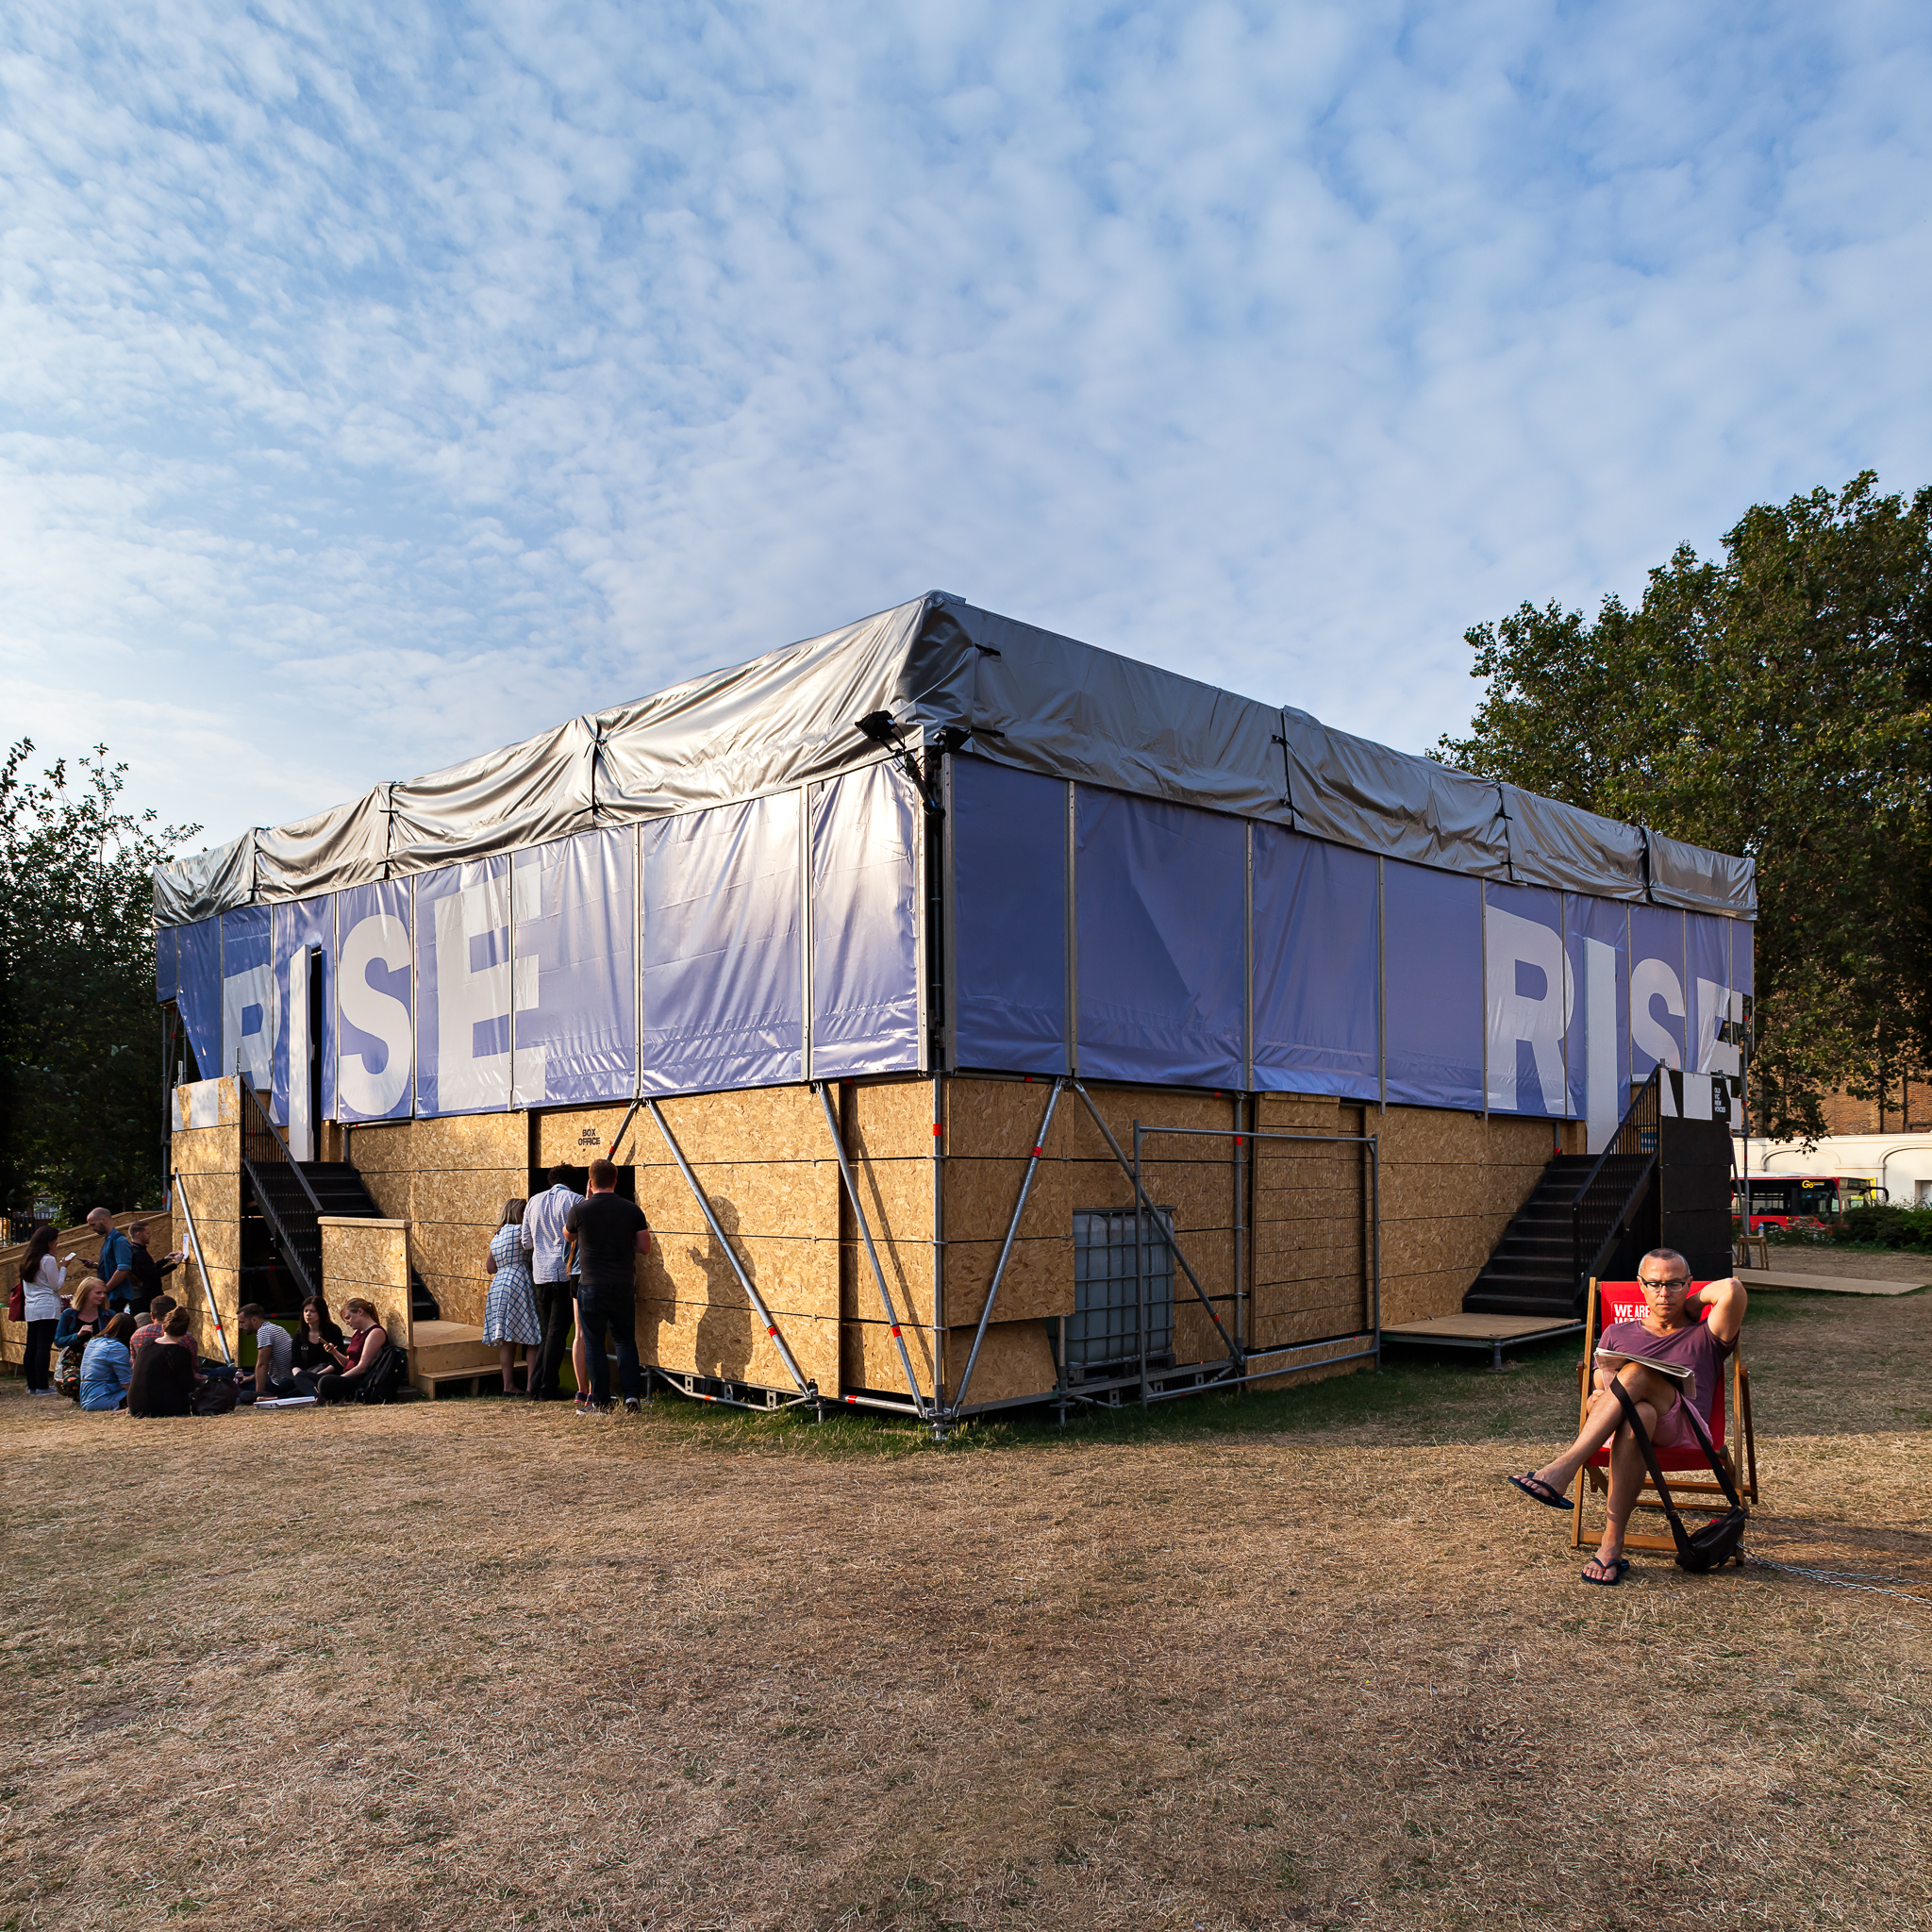 Polysemic-The-OVNV-Old-Vic-New-Voices-RISE Temporary-Theatre-Peter-Landers-Pano_9727_9724.jpg